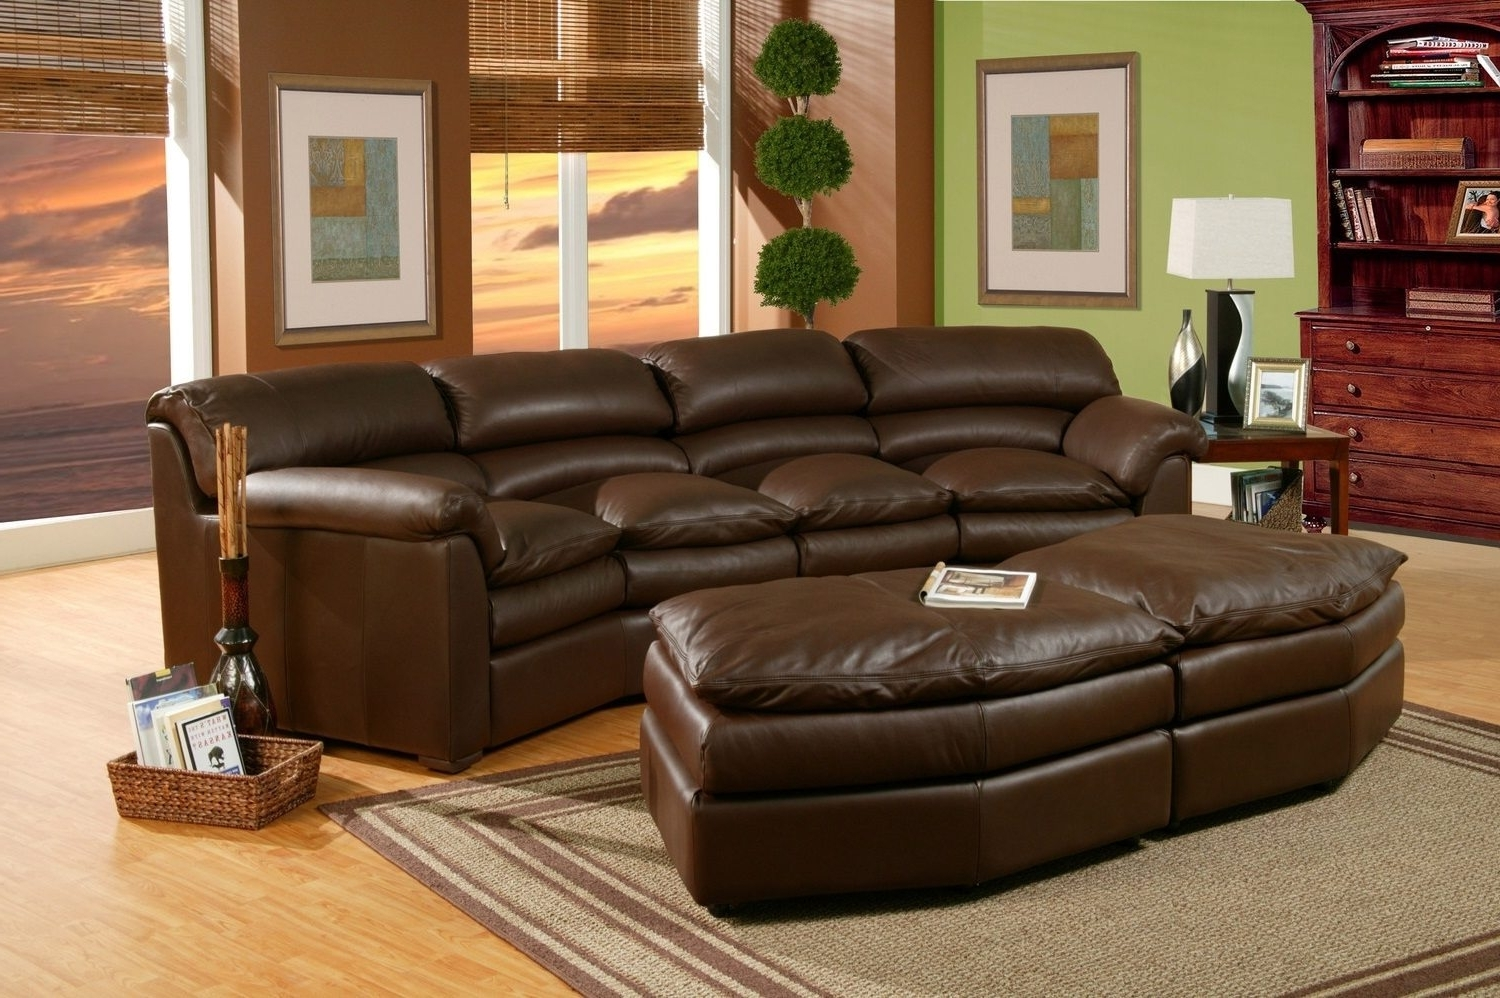 Widely Used Theatre Sectional Sofas Pertaining To Home Theater Sectional Sofa – Visionexchange (View 12 of 20)